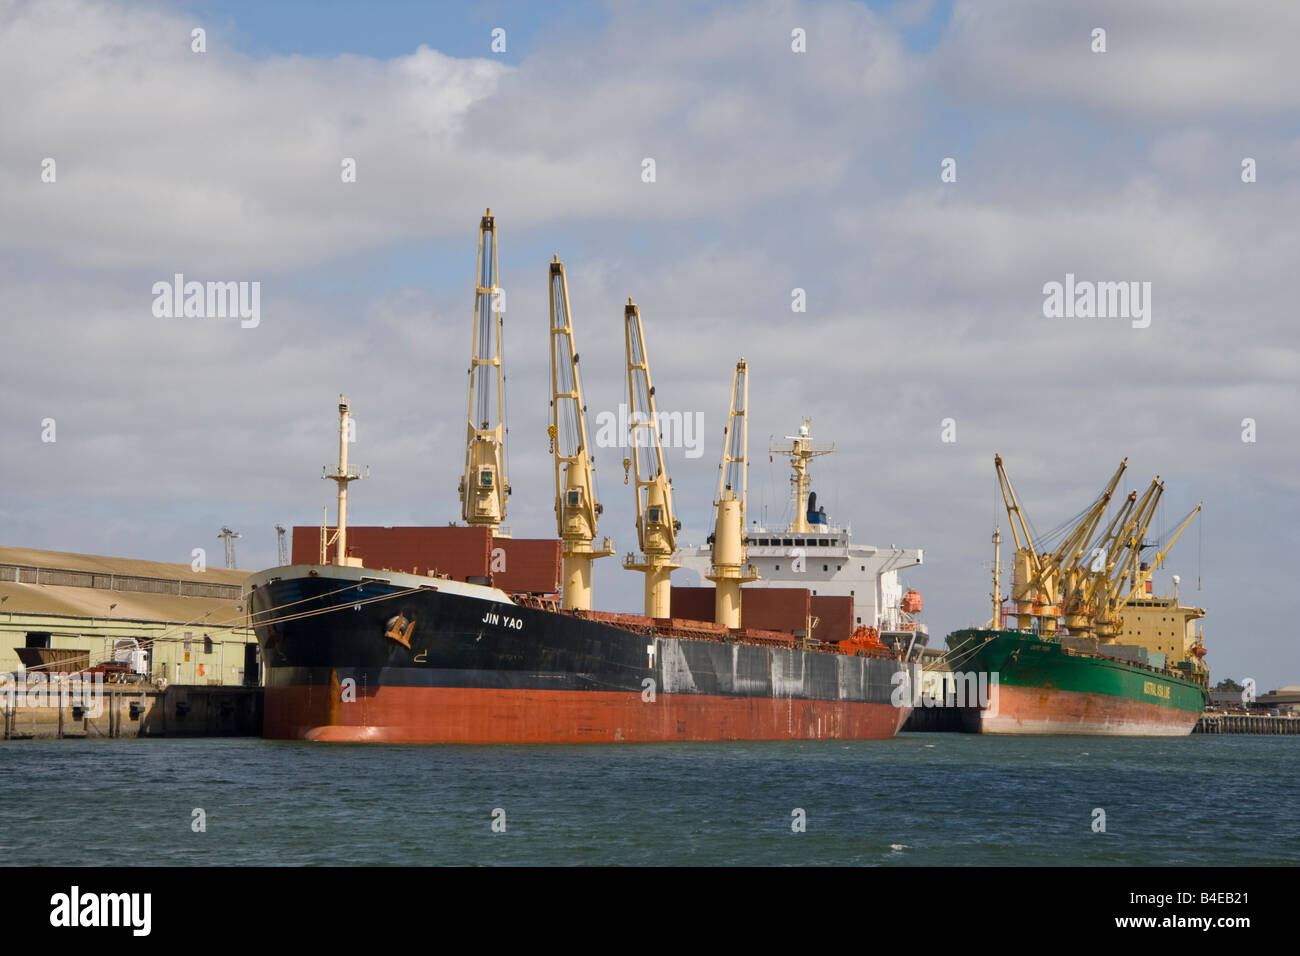 Container ships in the Port River, Adelaide, South Australia - Stock Image